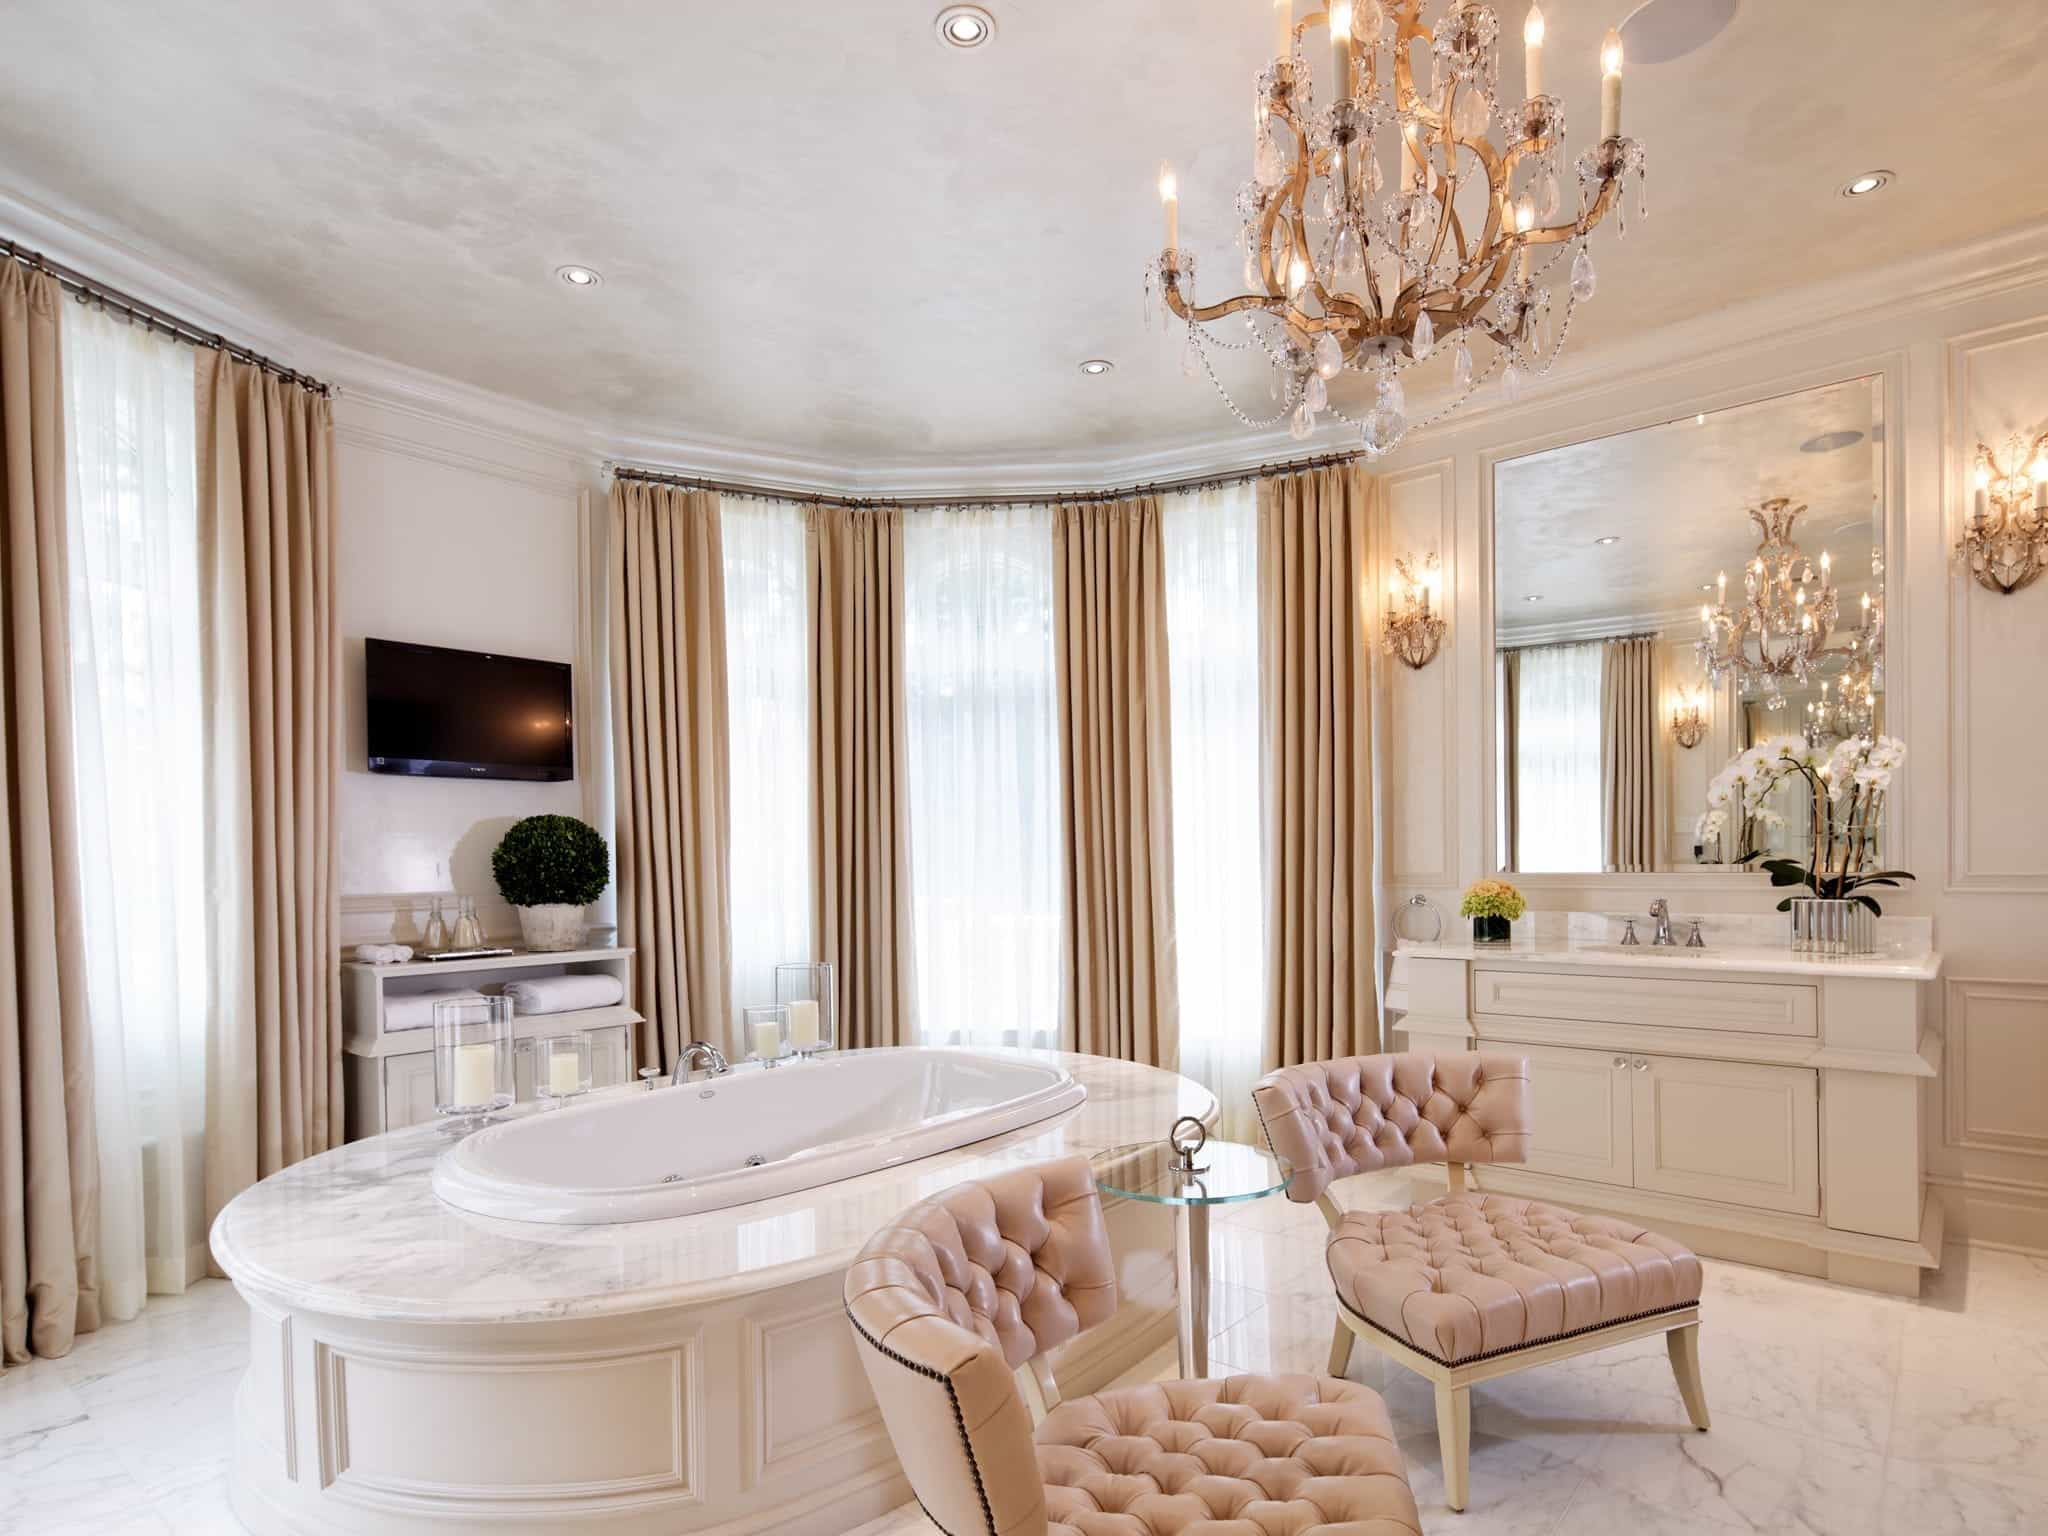 Featured Image of Luxury Master Bathroom With Marble Floors